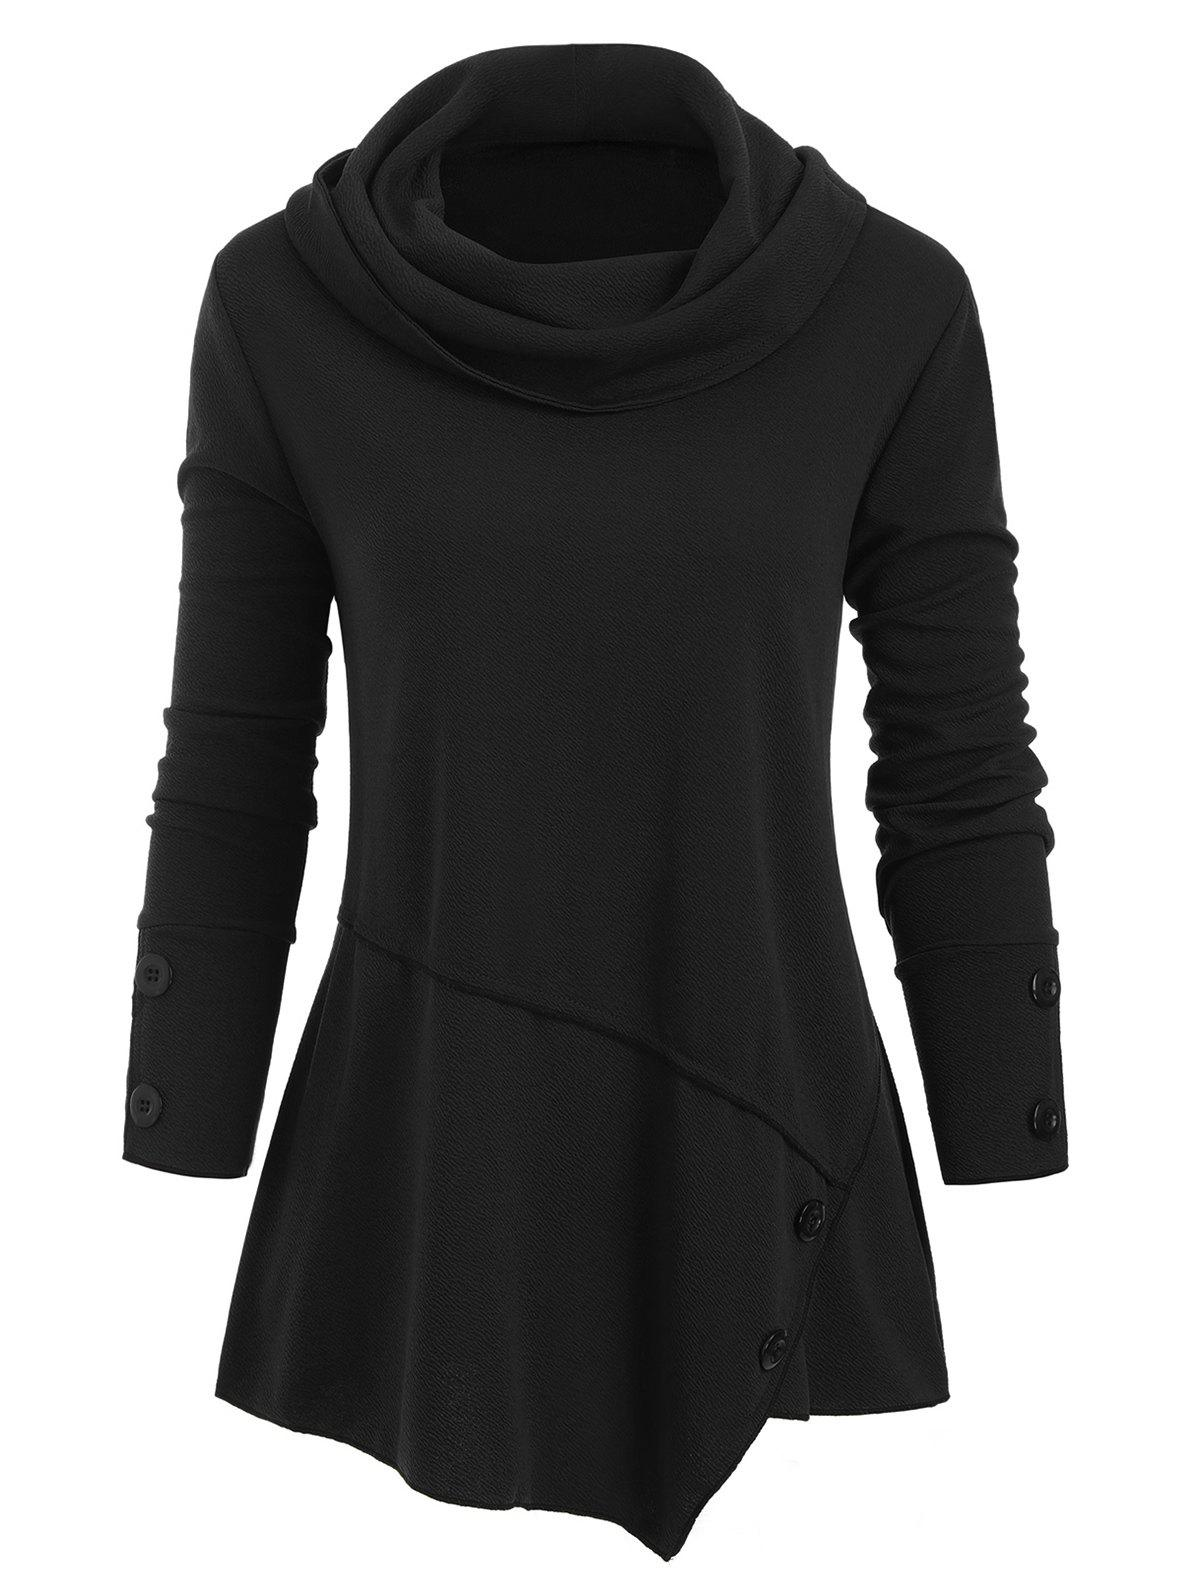 Unique Cowl Neck Buttons Long Sleeves Top